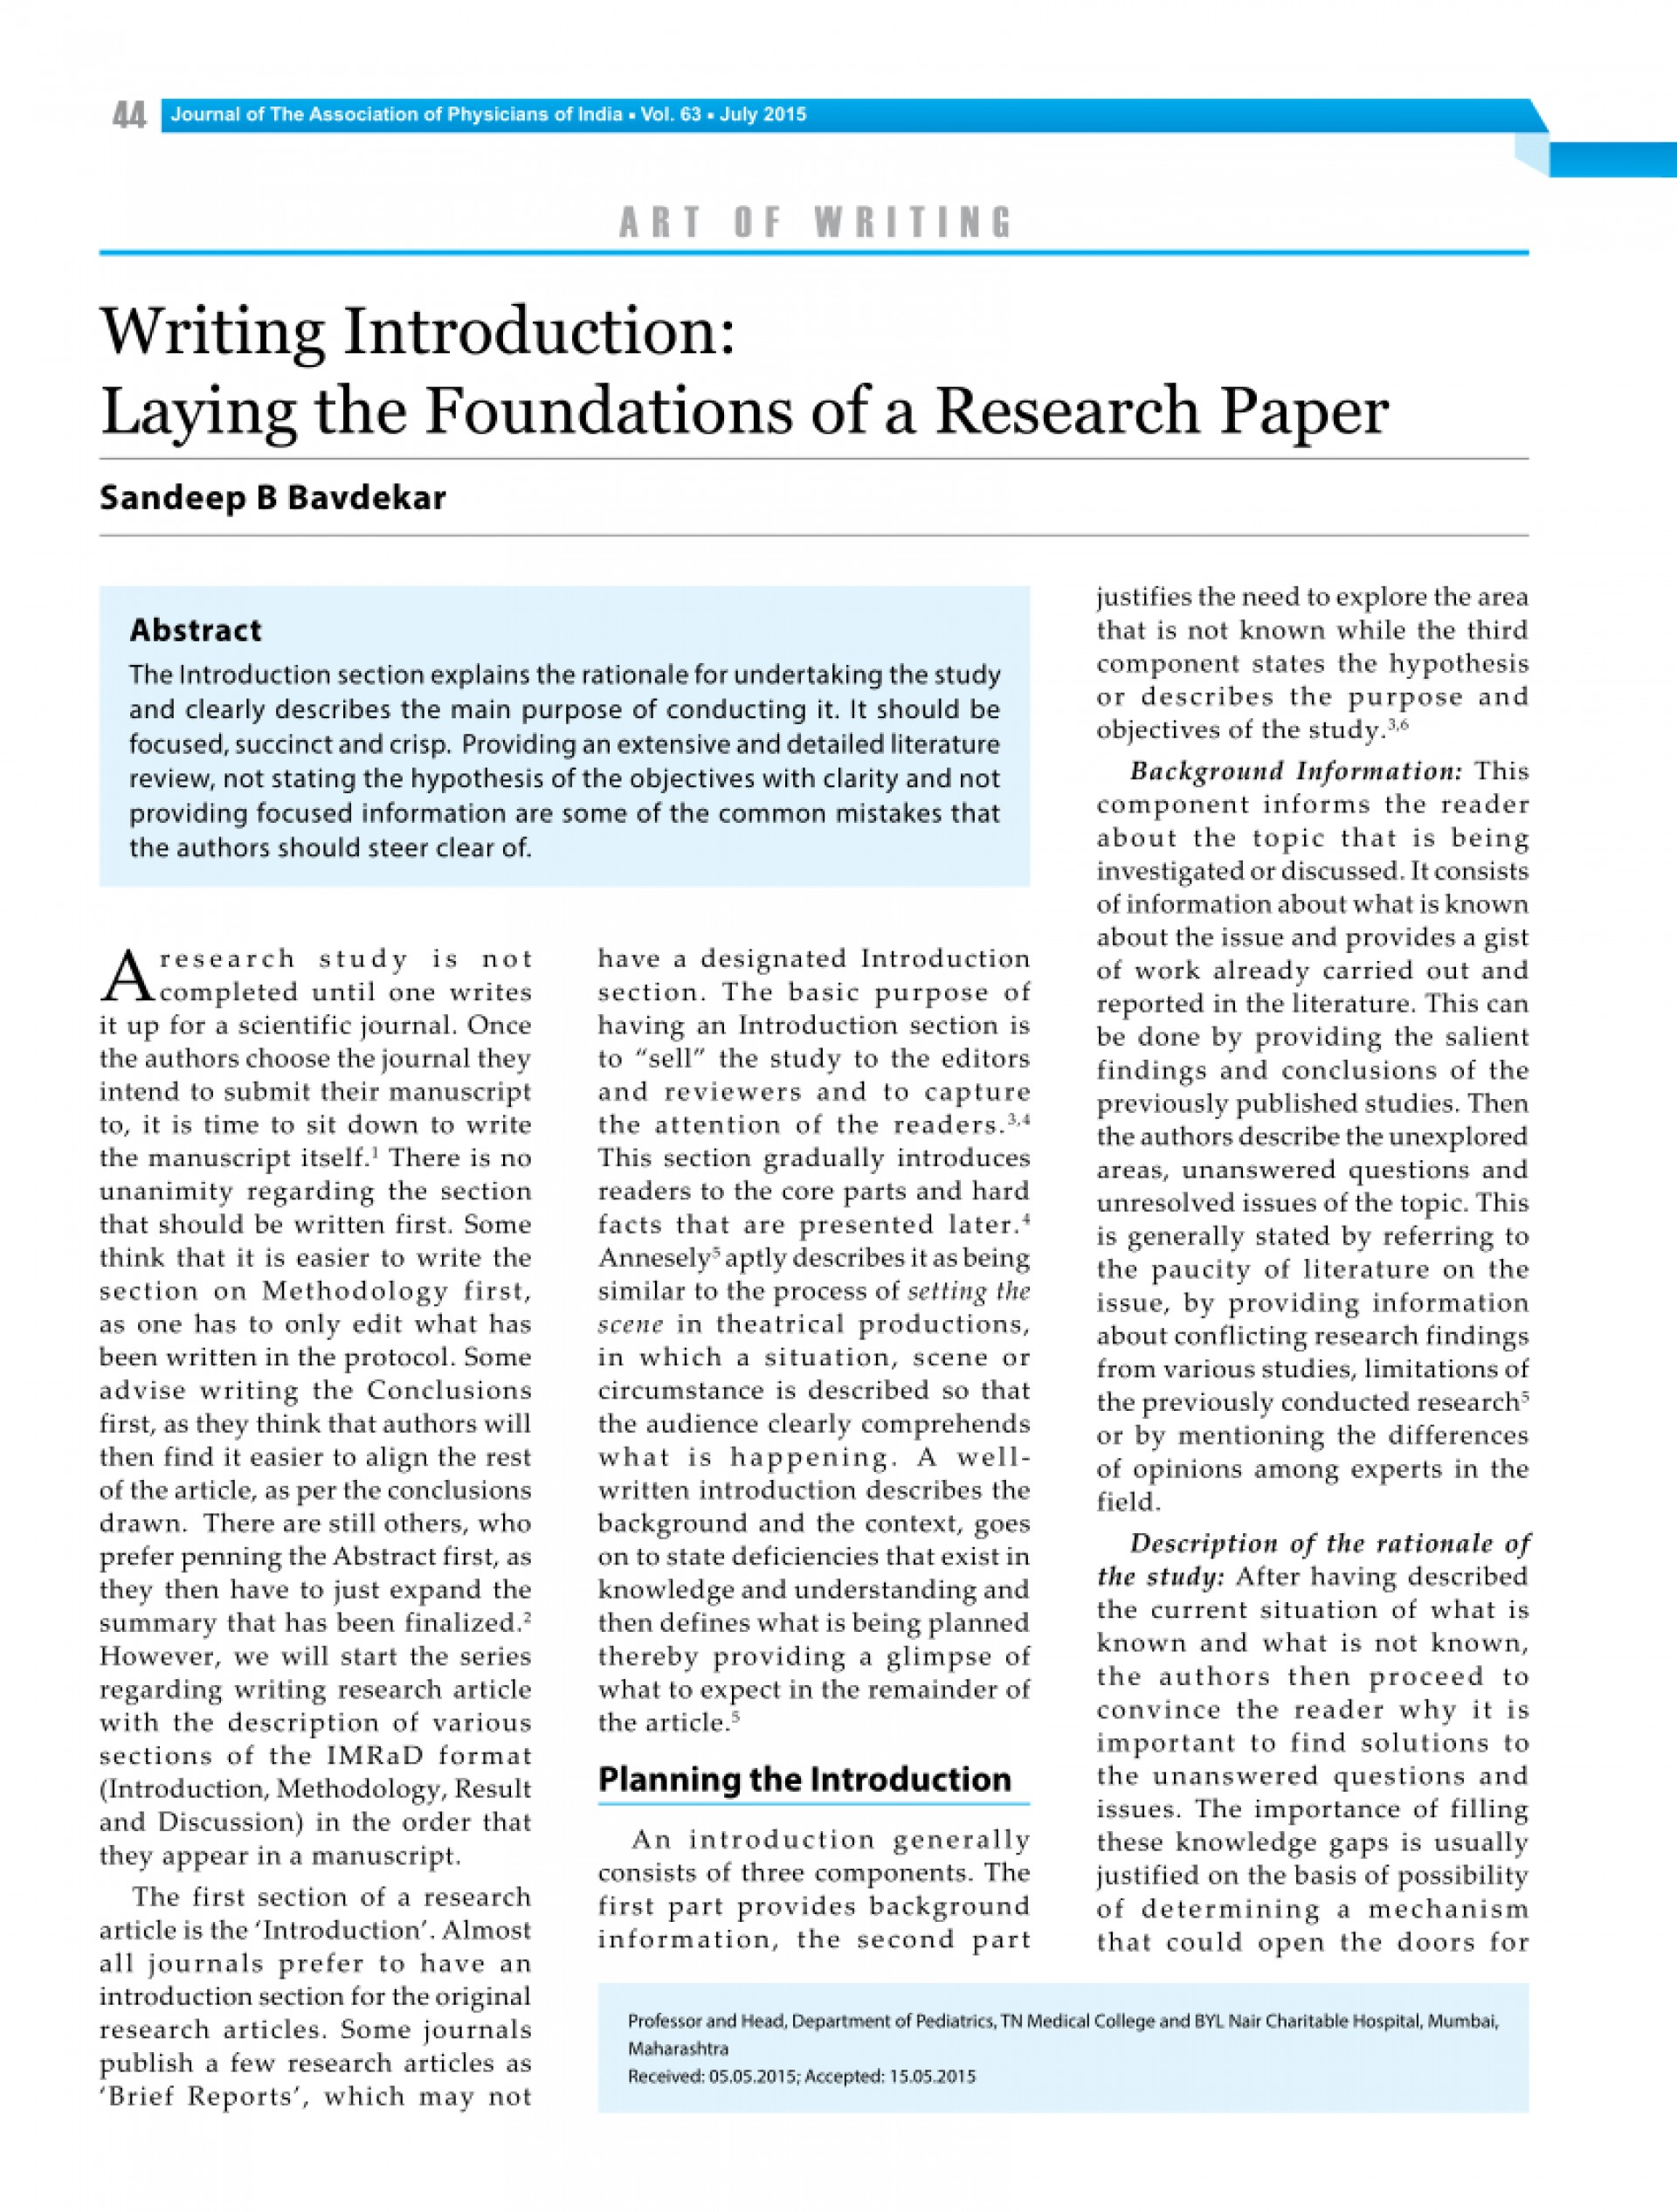 004 Largepreview Research Paper Writingn Introduction To Top Writing An A Effective For How Write Powerpoint Ppt 1920